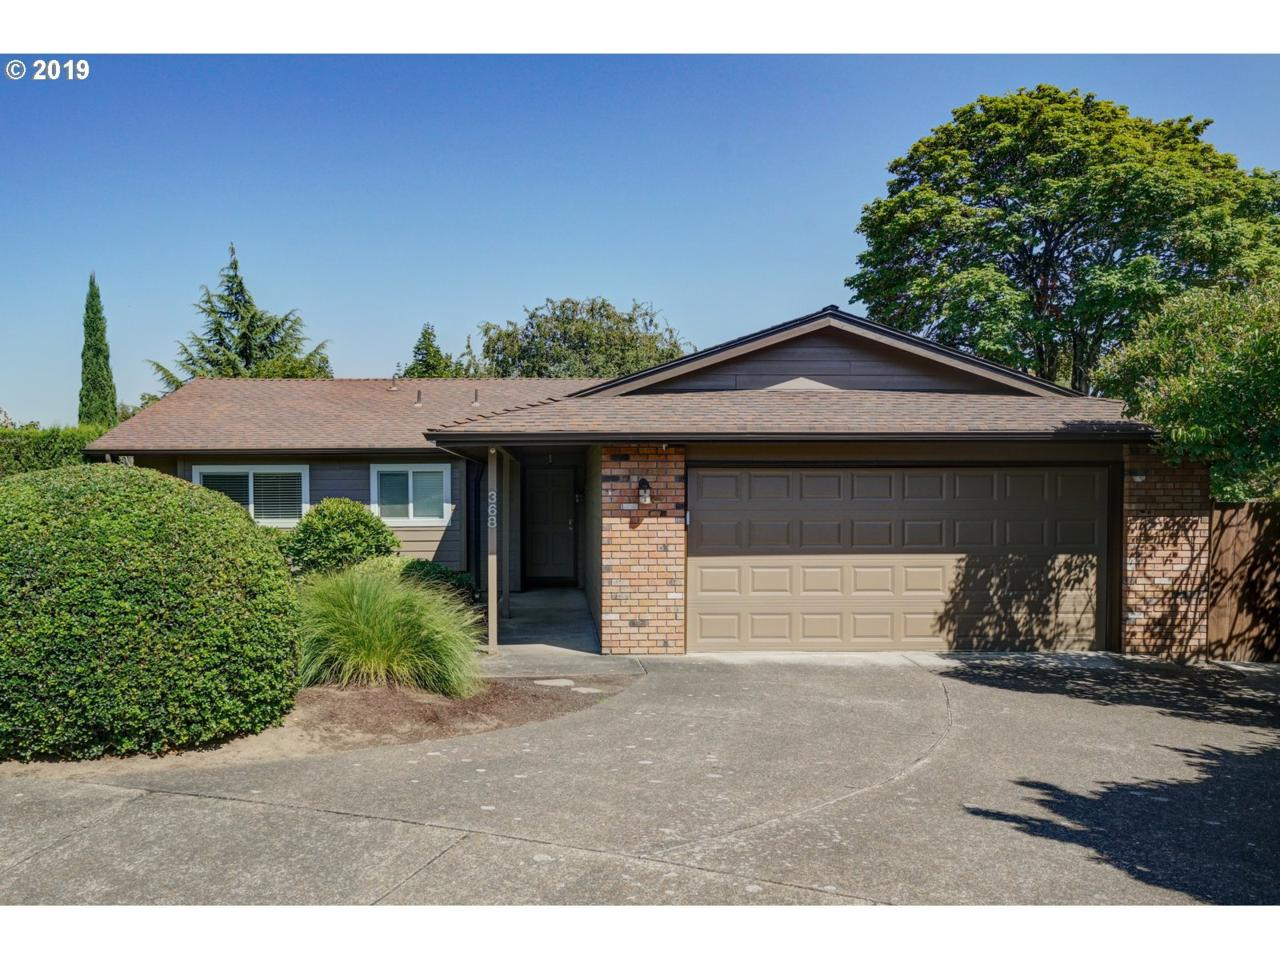 368 Dorcas Dr - Photo 1